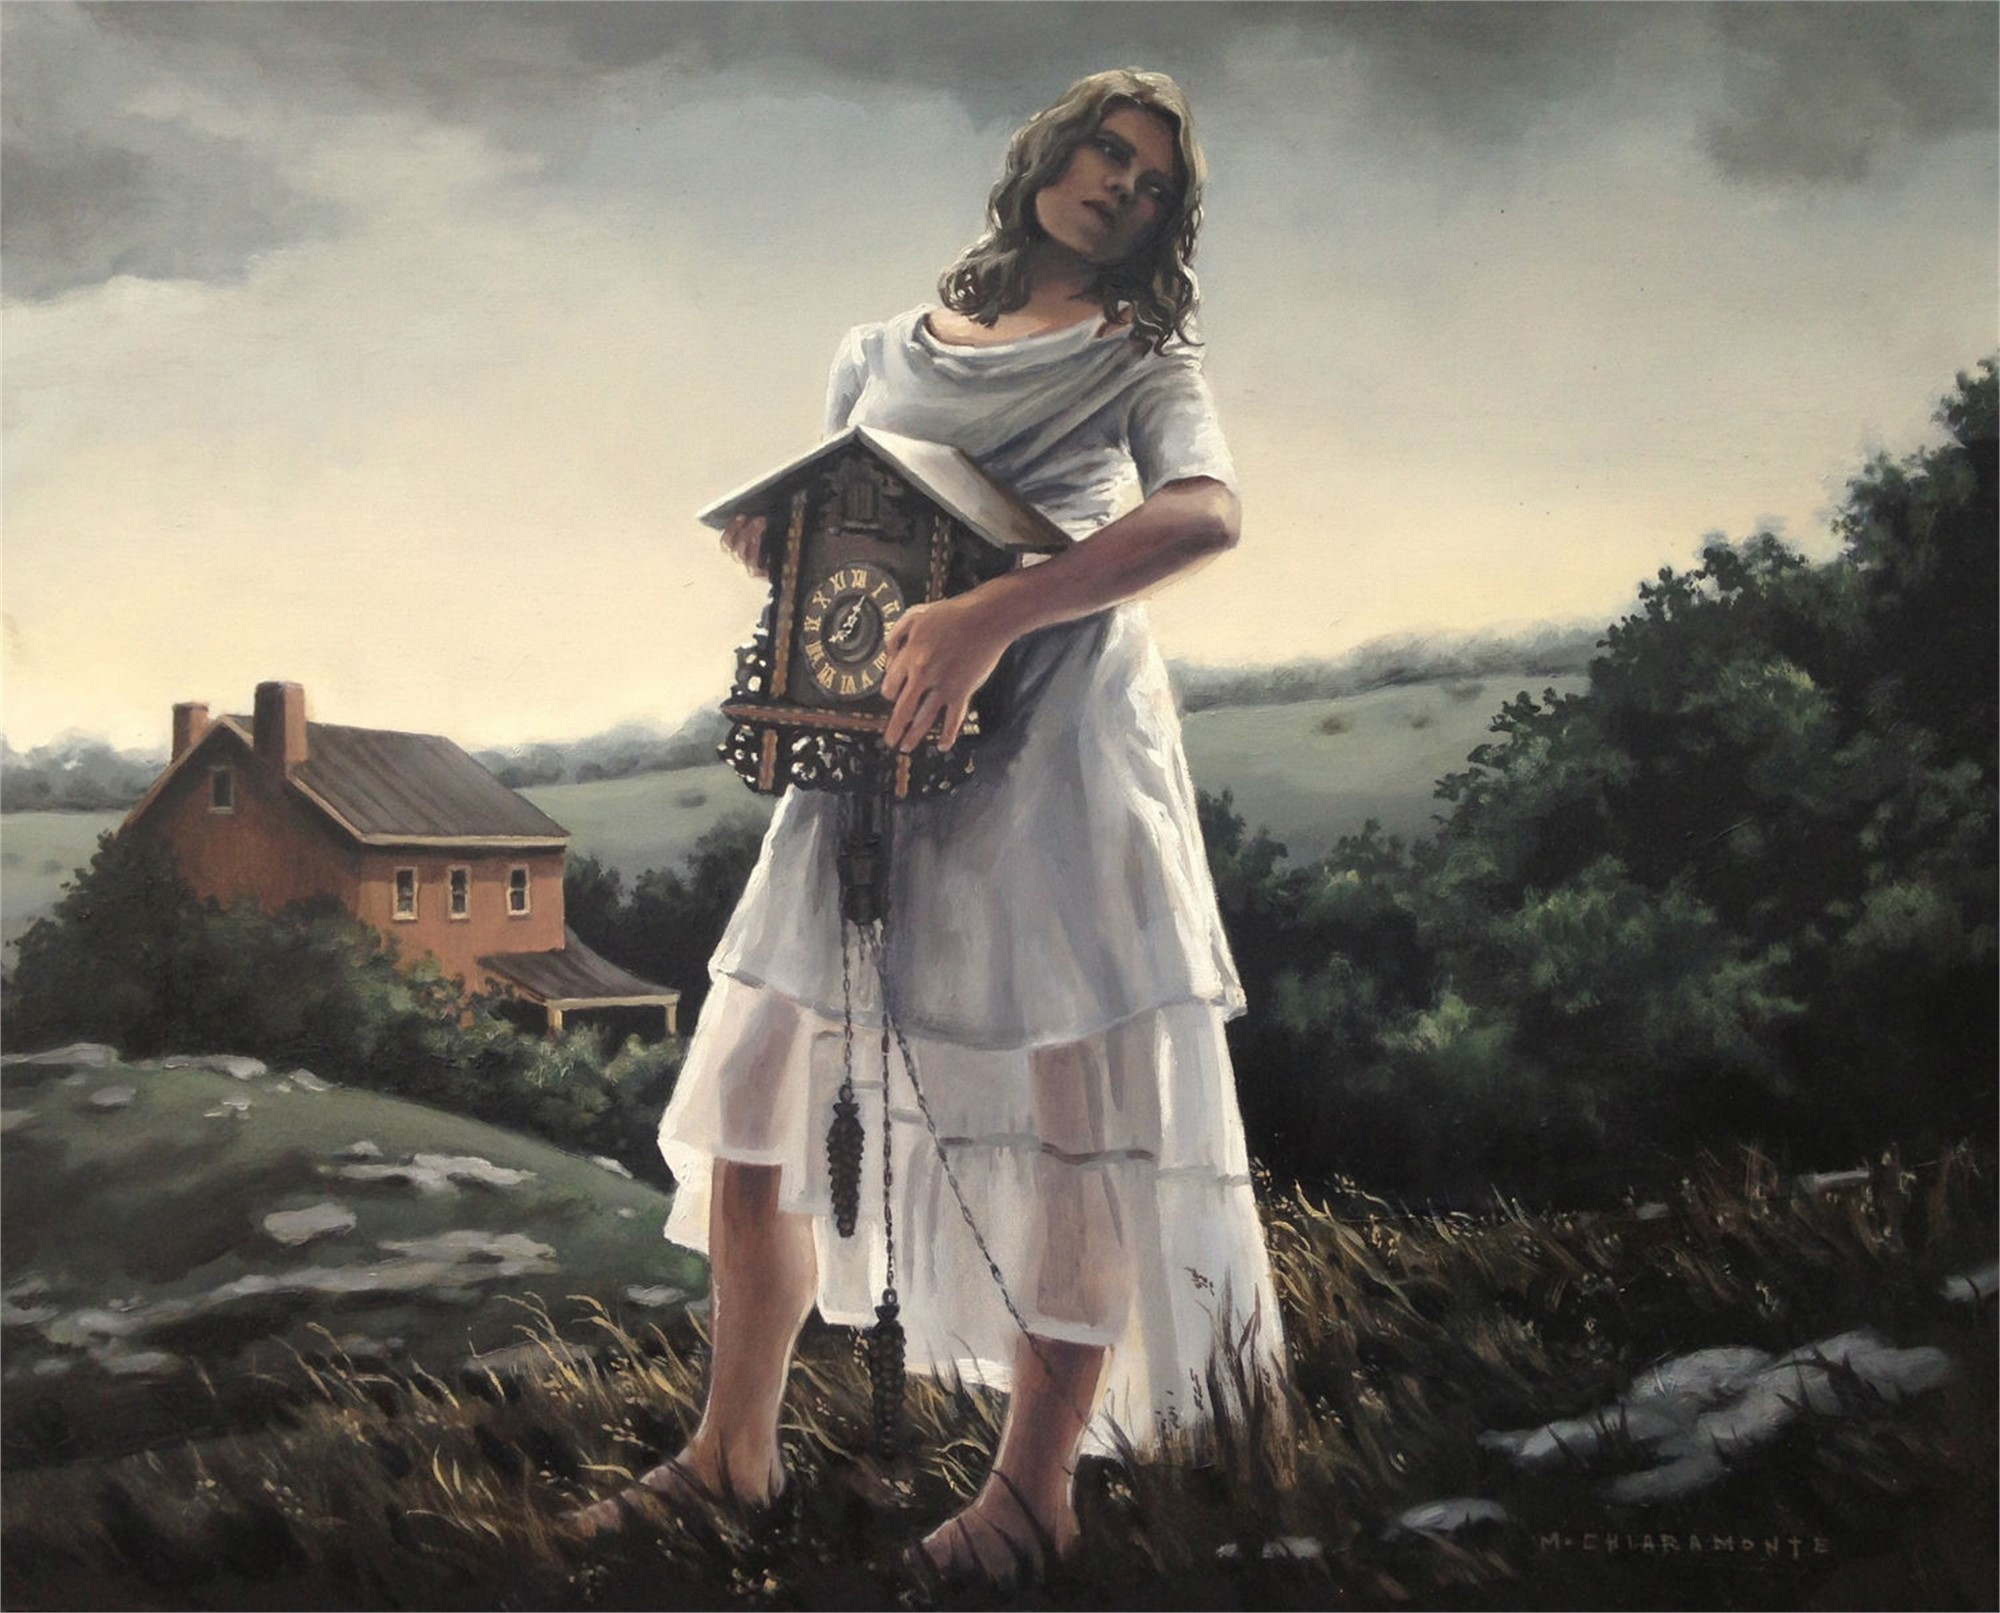 The Offering by Mary Chiaramonte